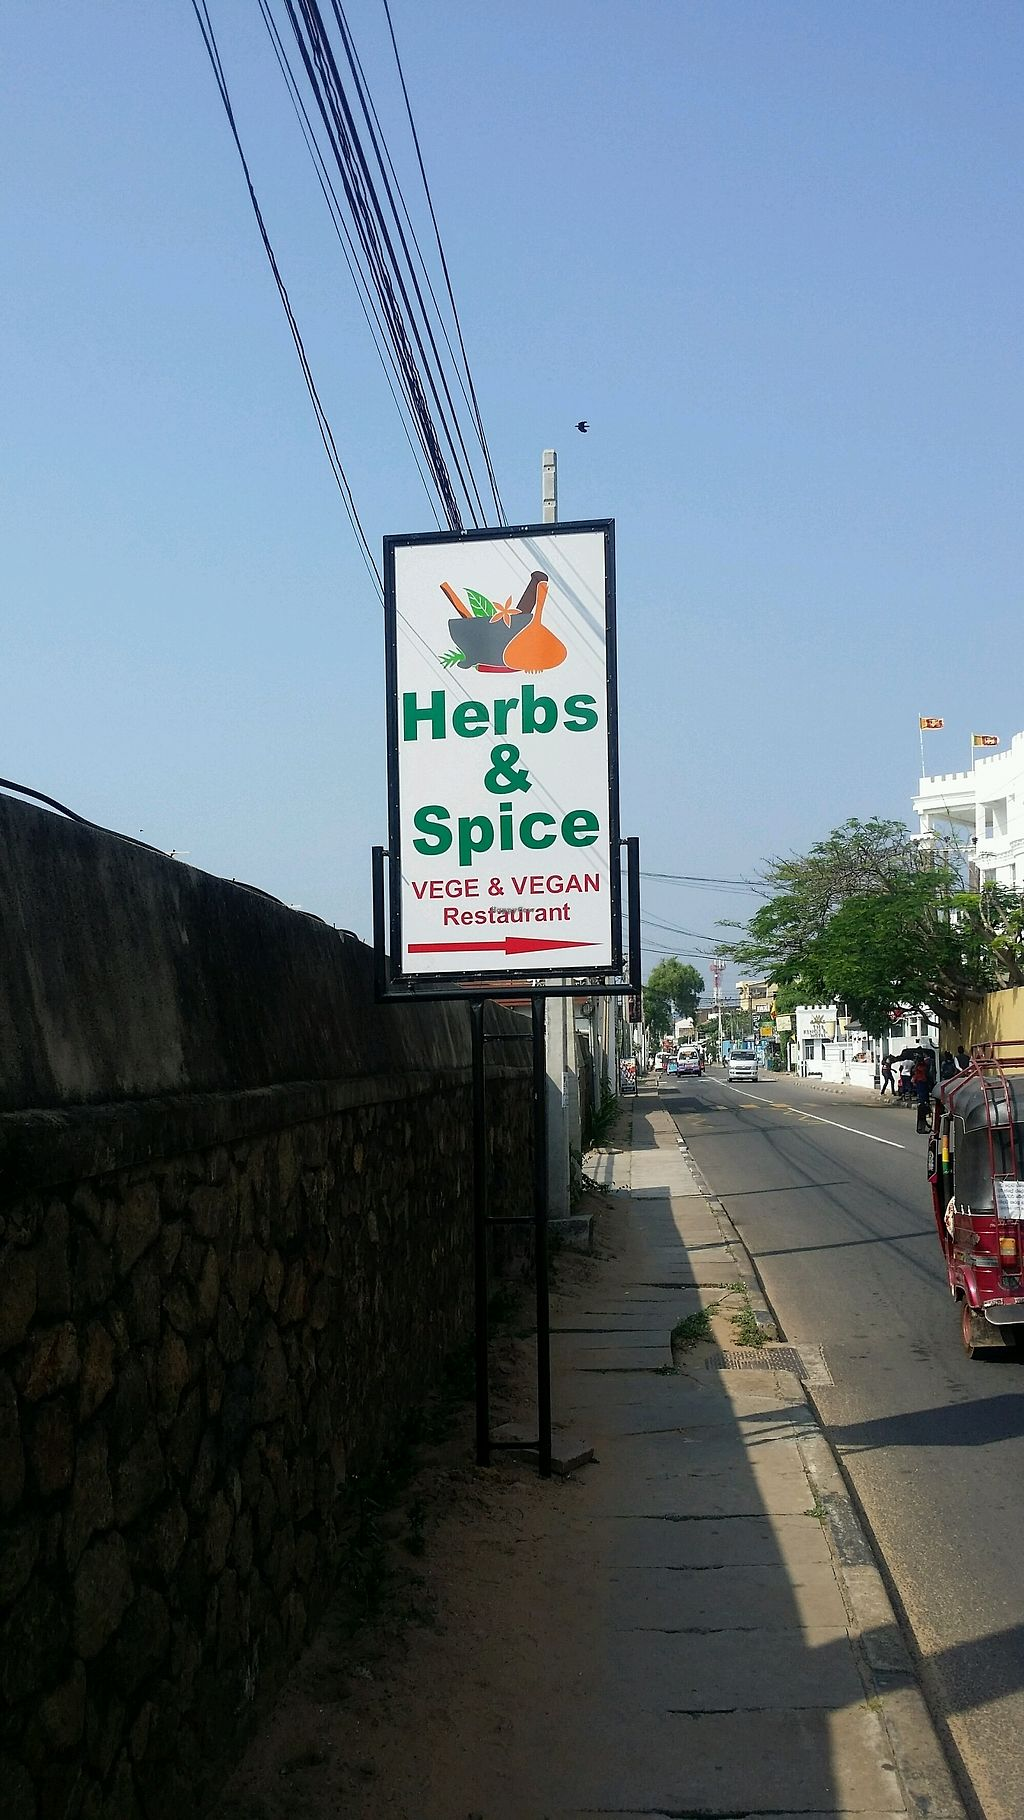 """Photo of Herbs and Spices  by <a href=""""/members/profile/ChristianParkes"""">ChristianParkes</a> <br/>Vegan and Vege menu labeled <br/> February 11, 2018  - <a href='/contact/abuse/image/110613/357811'>Report</a>"""